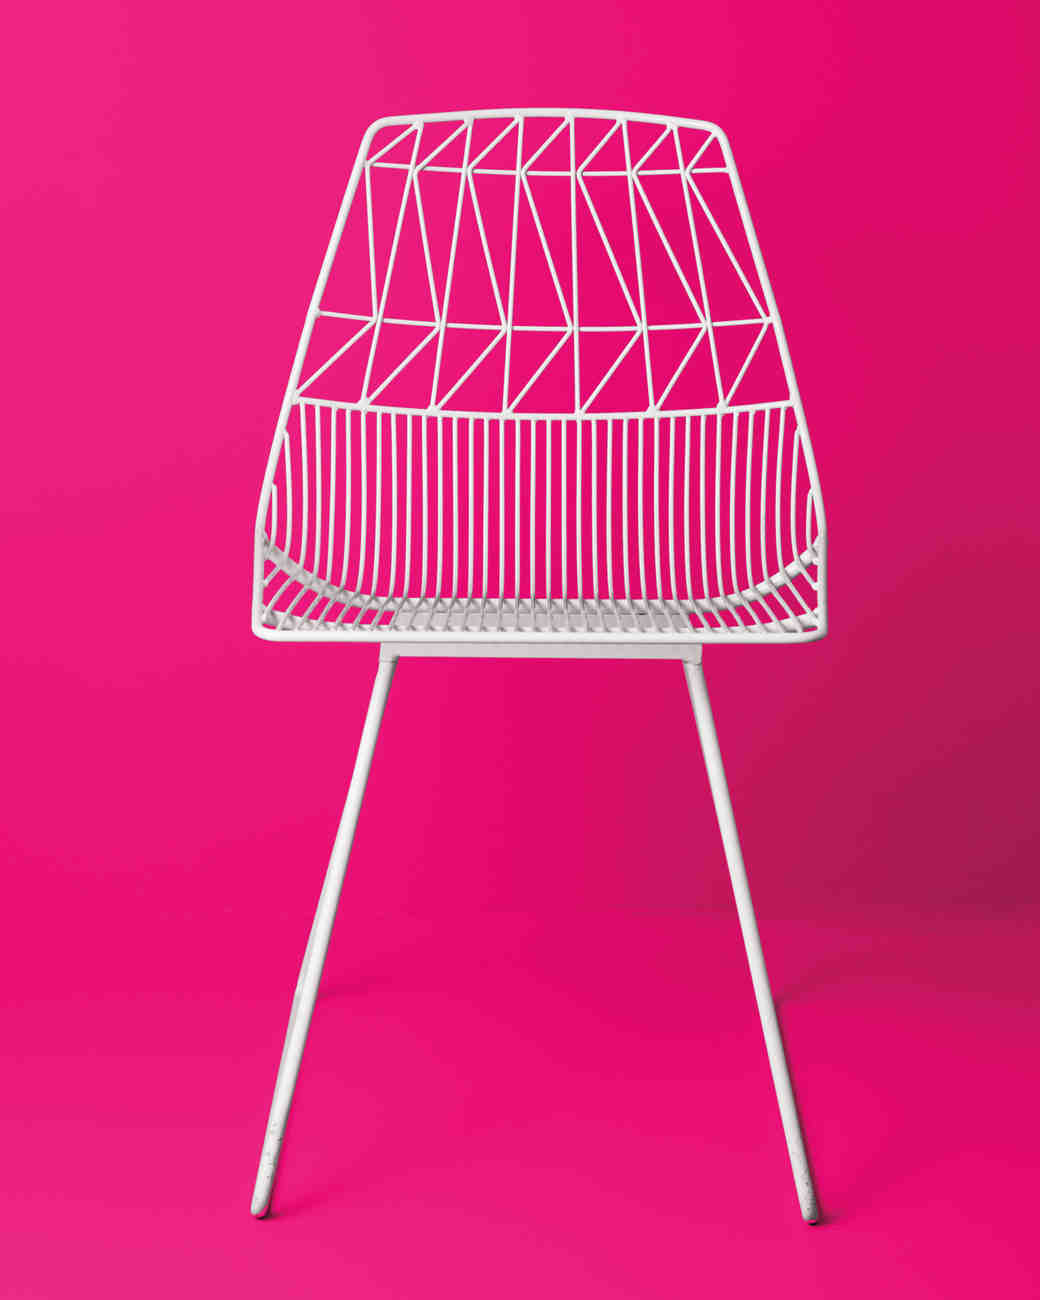 white-metal-chair-015-d112473.jpg